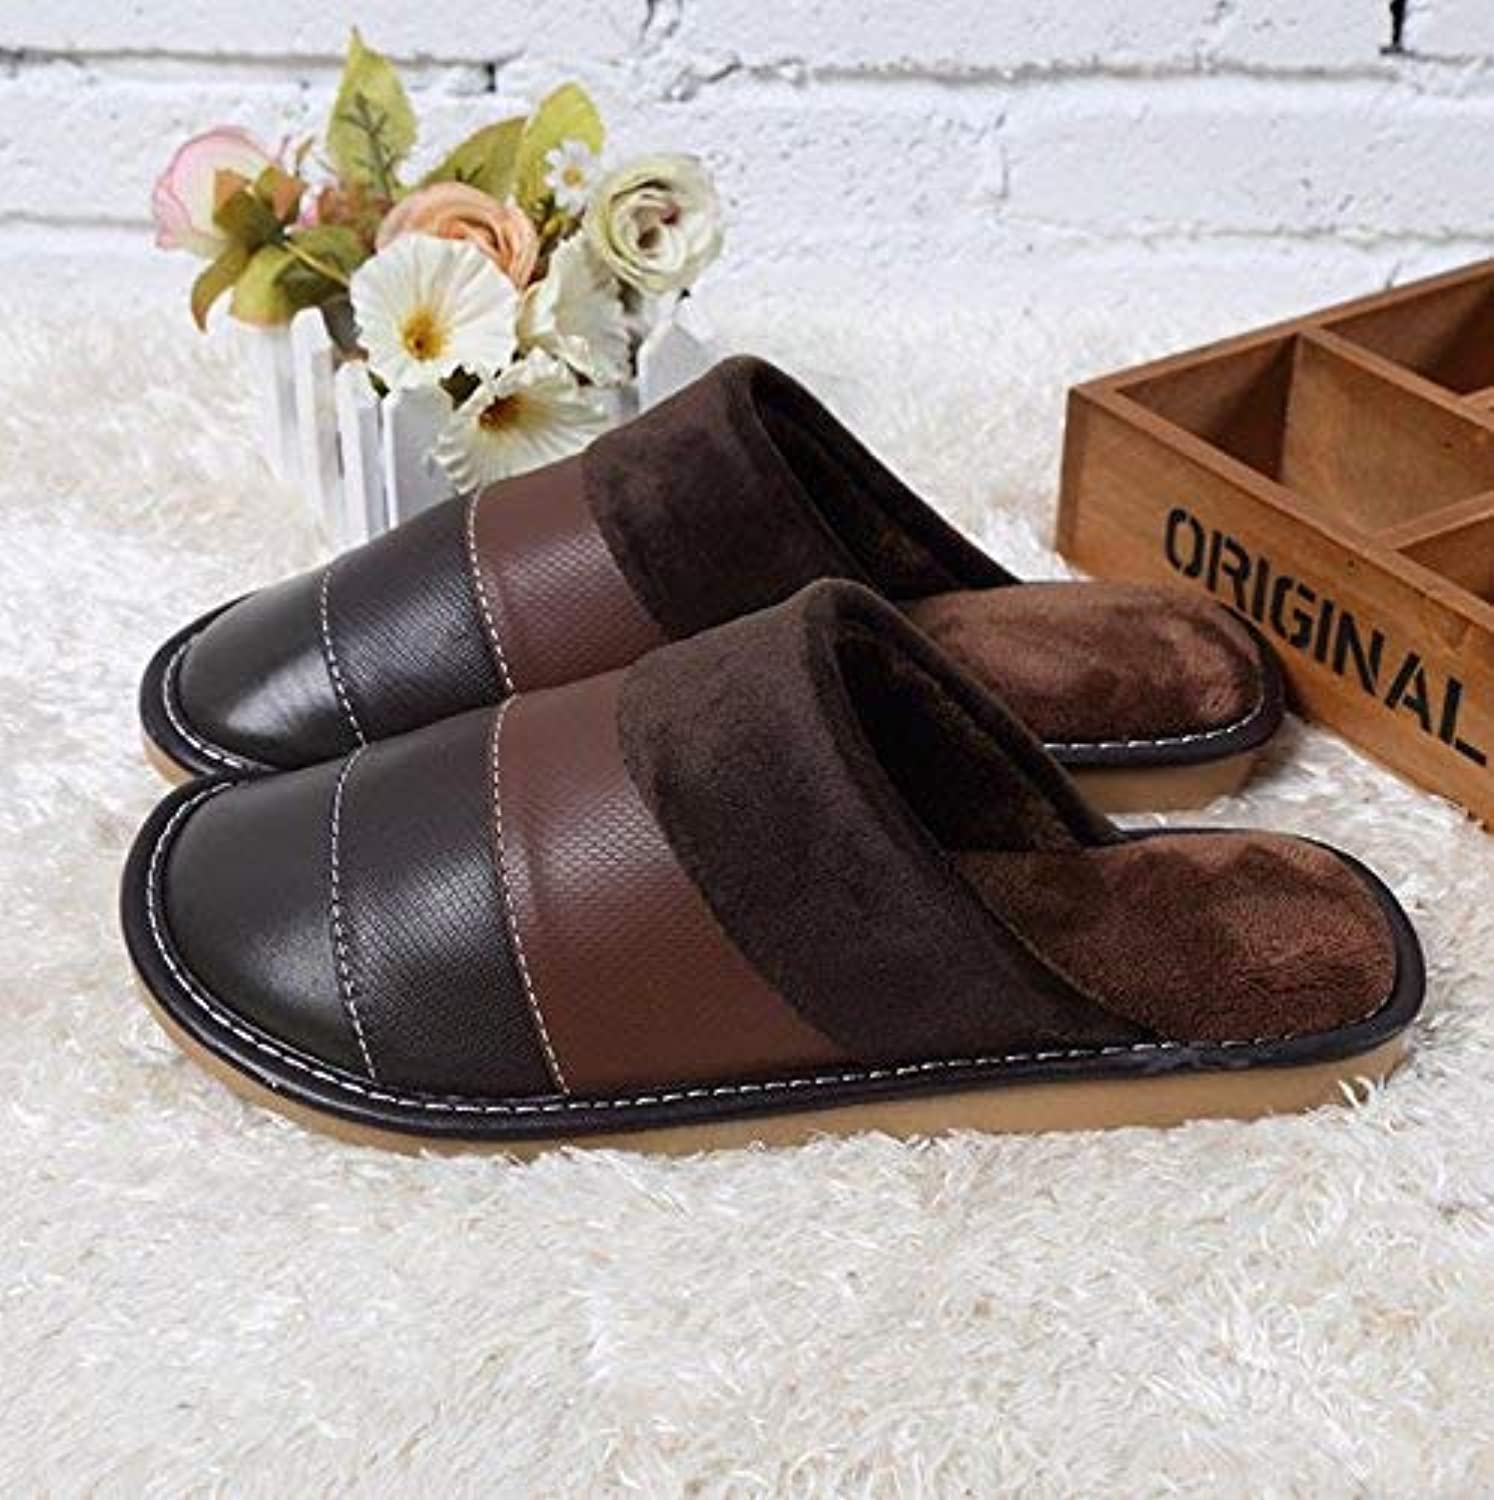 Men's Home Slippers Indoor Slippery and Warm Artificial Leather Slippers Patchwork color Winter and Autumn Classic Comfortable shoes